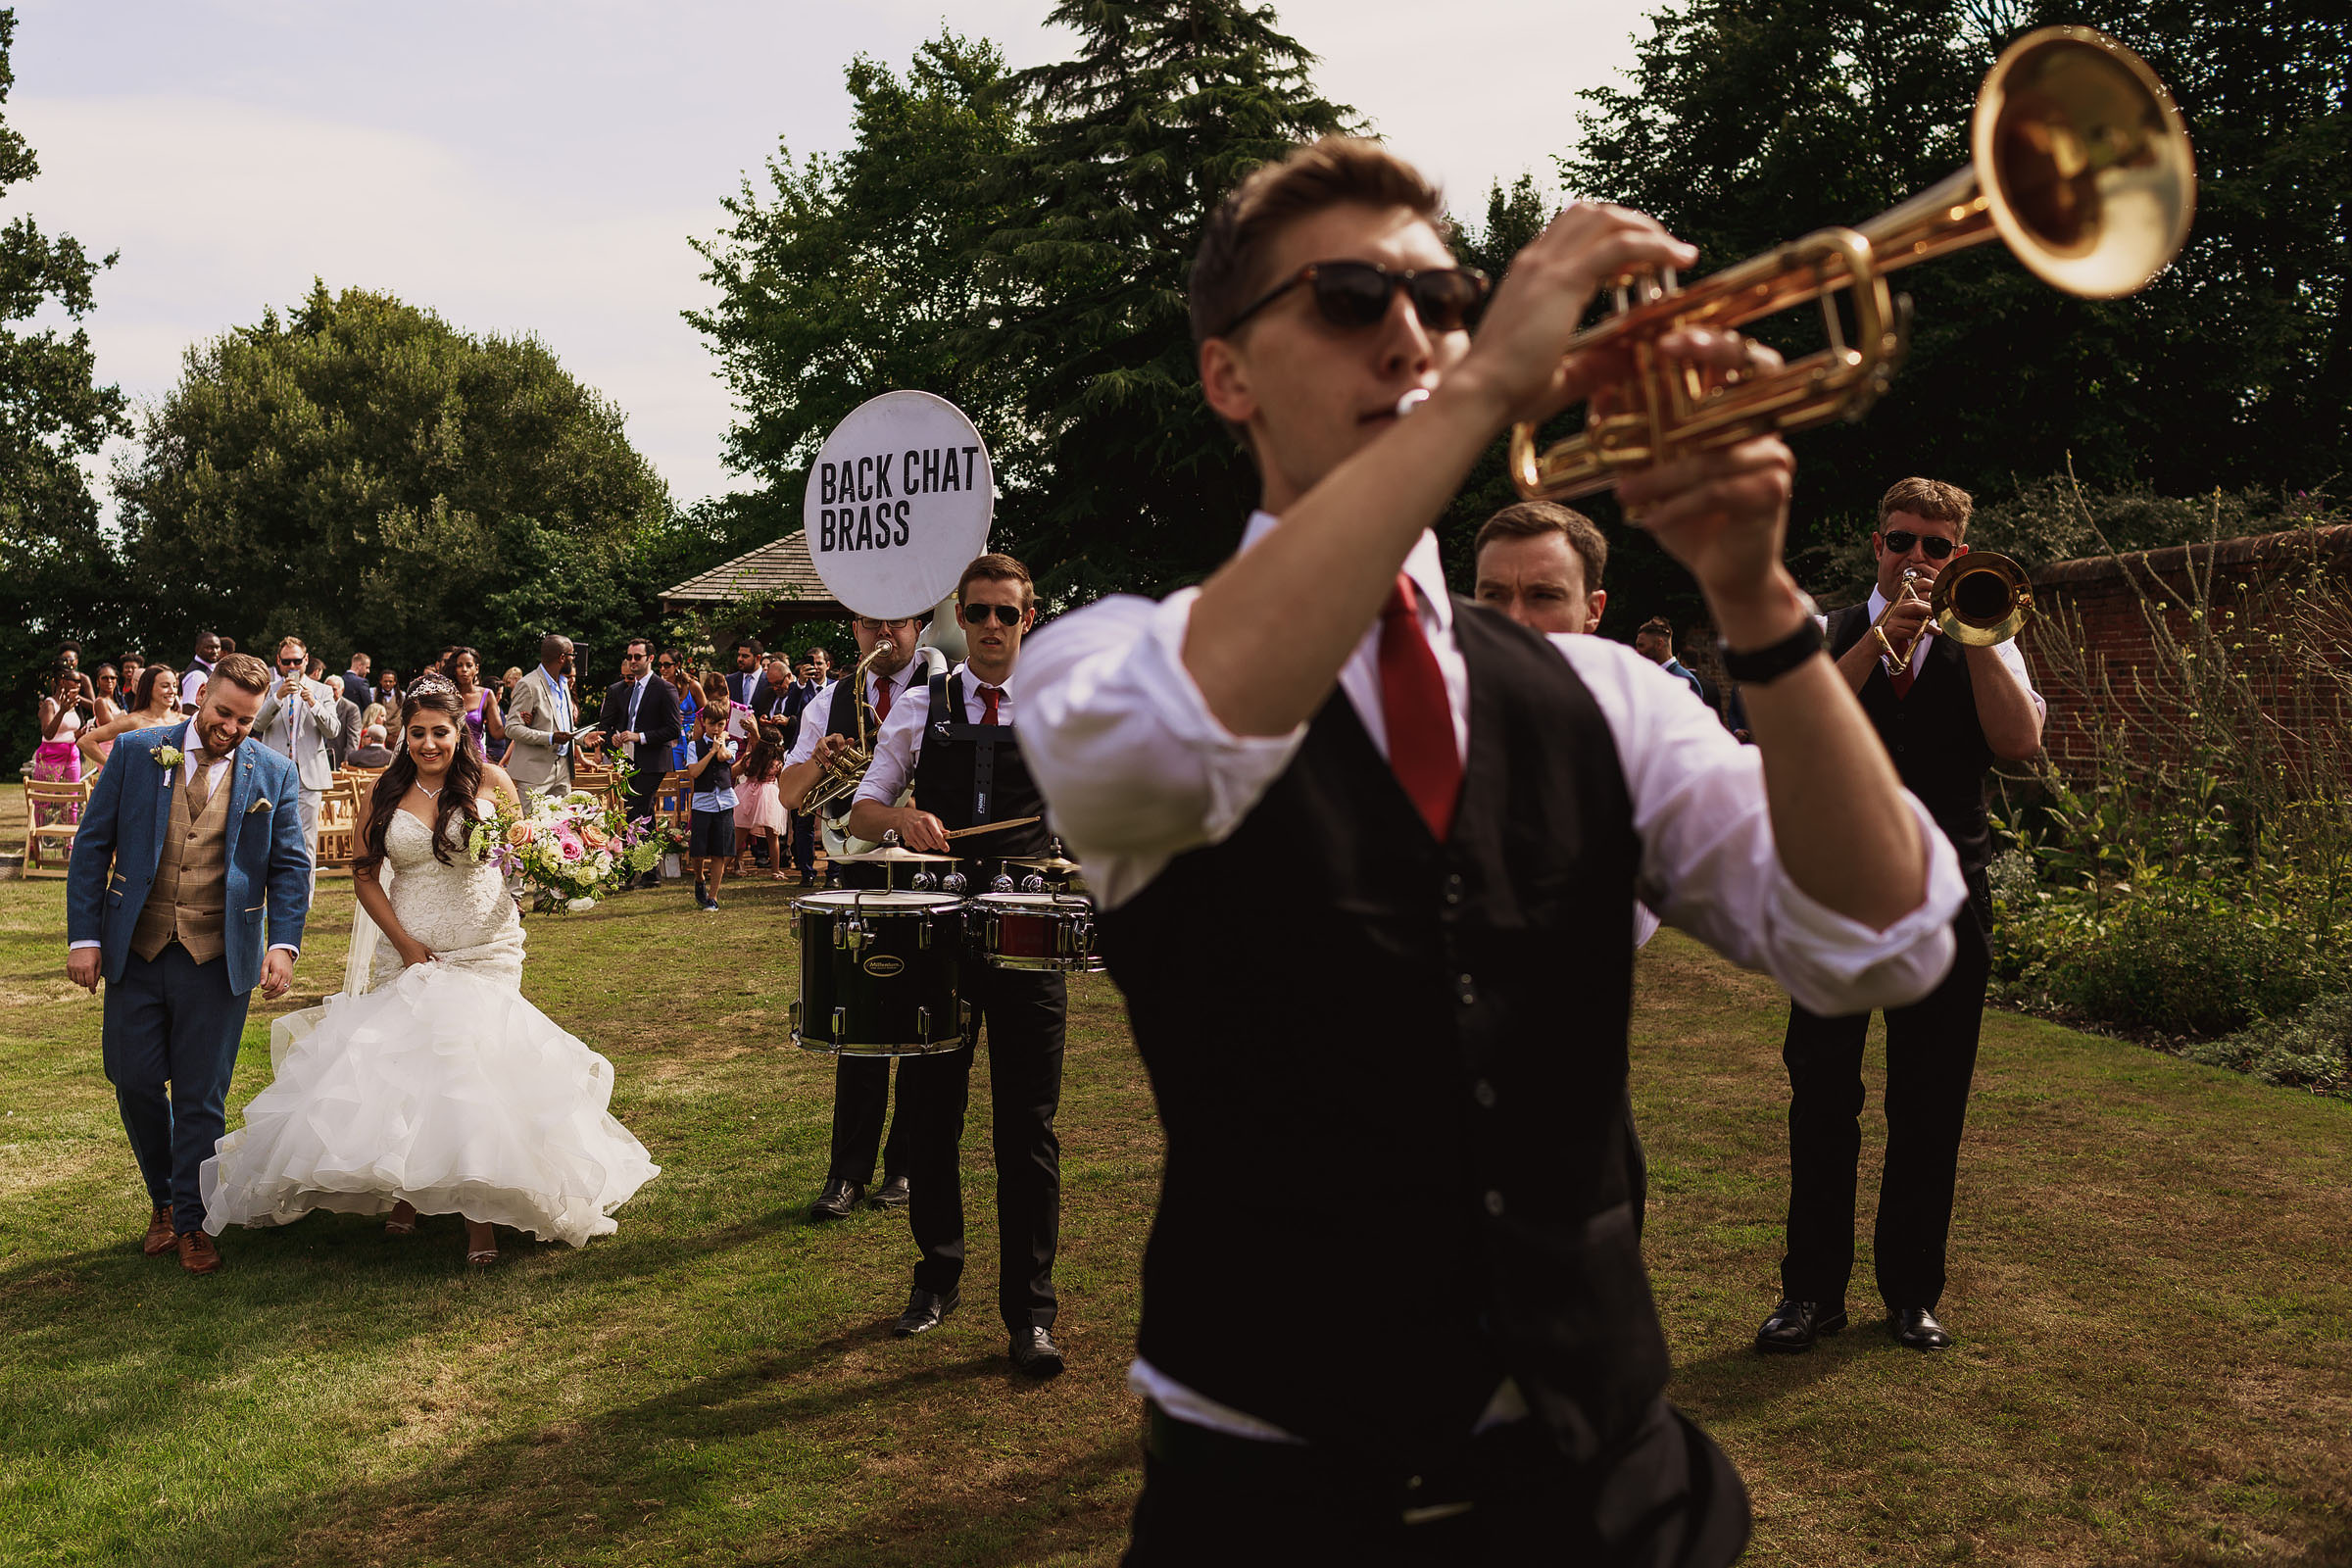 Marching band leads bridal party - Photo by F5 Photography